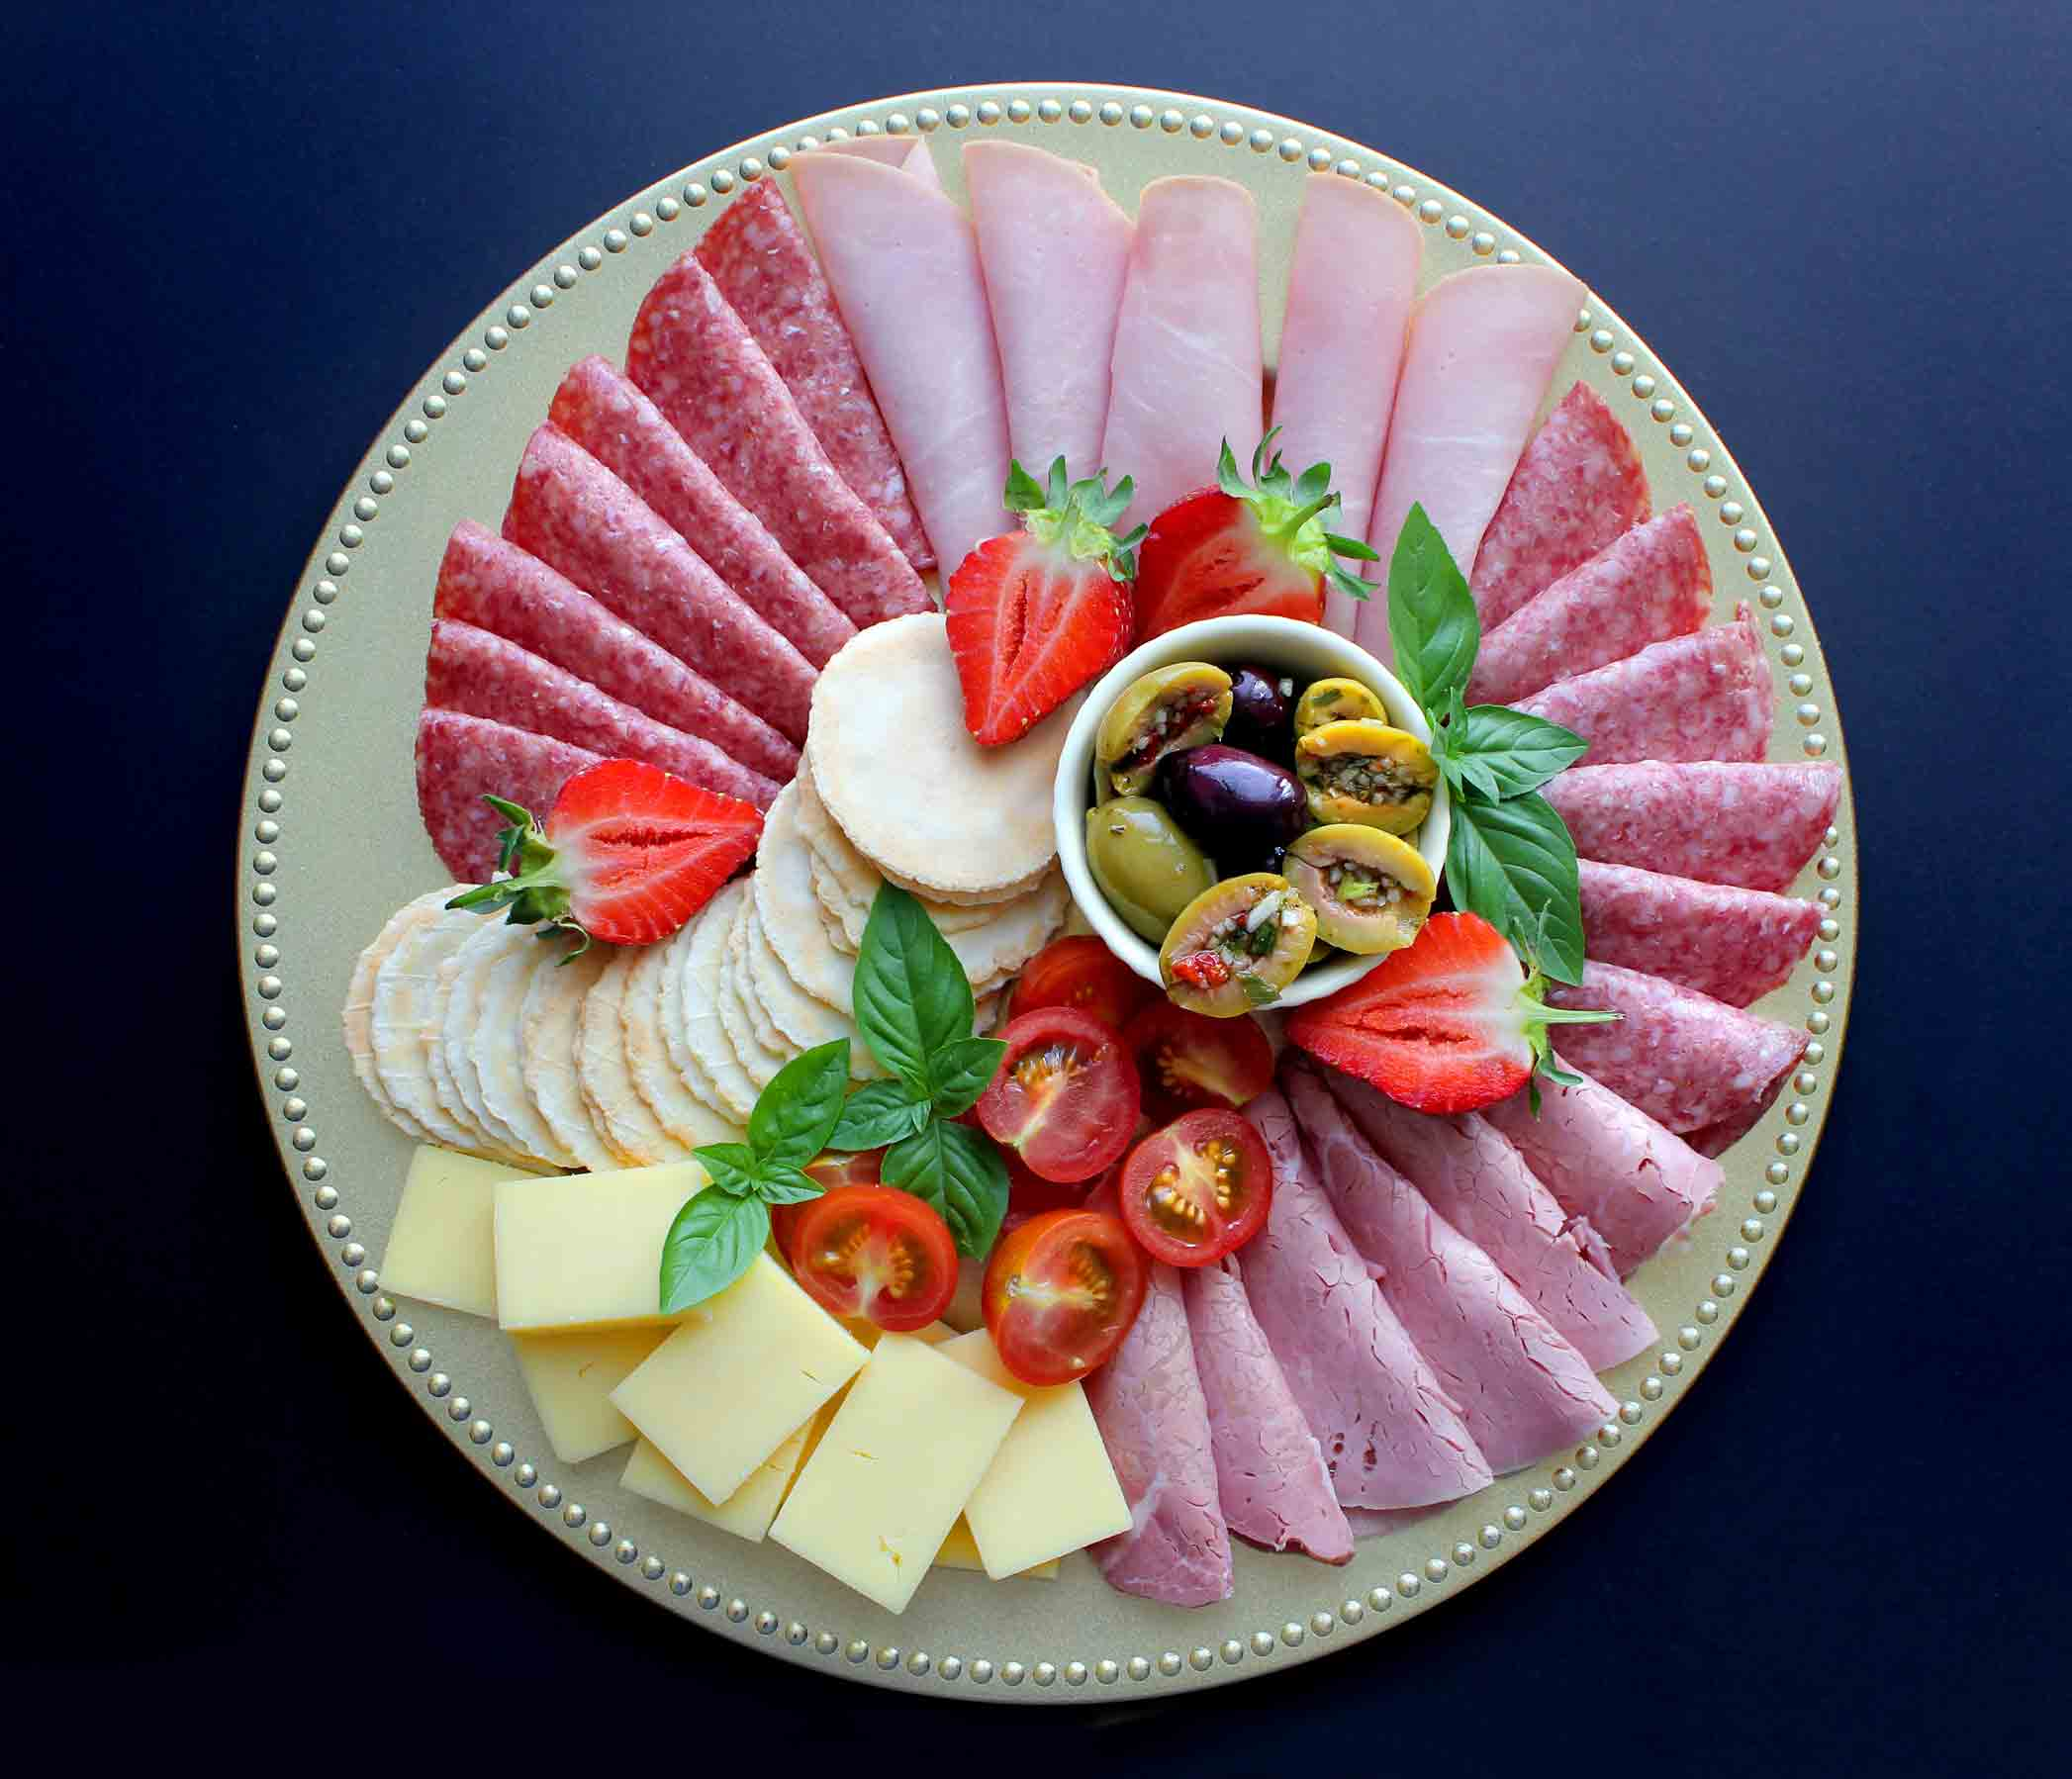 flat-lay-party-food-deli-platter-of-antipasto-ham--WY2DQY8